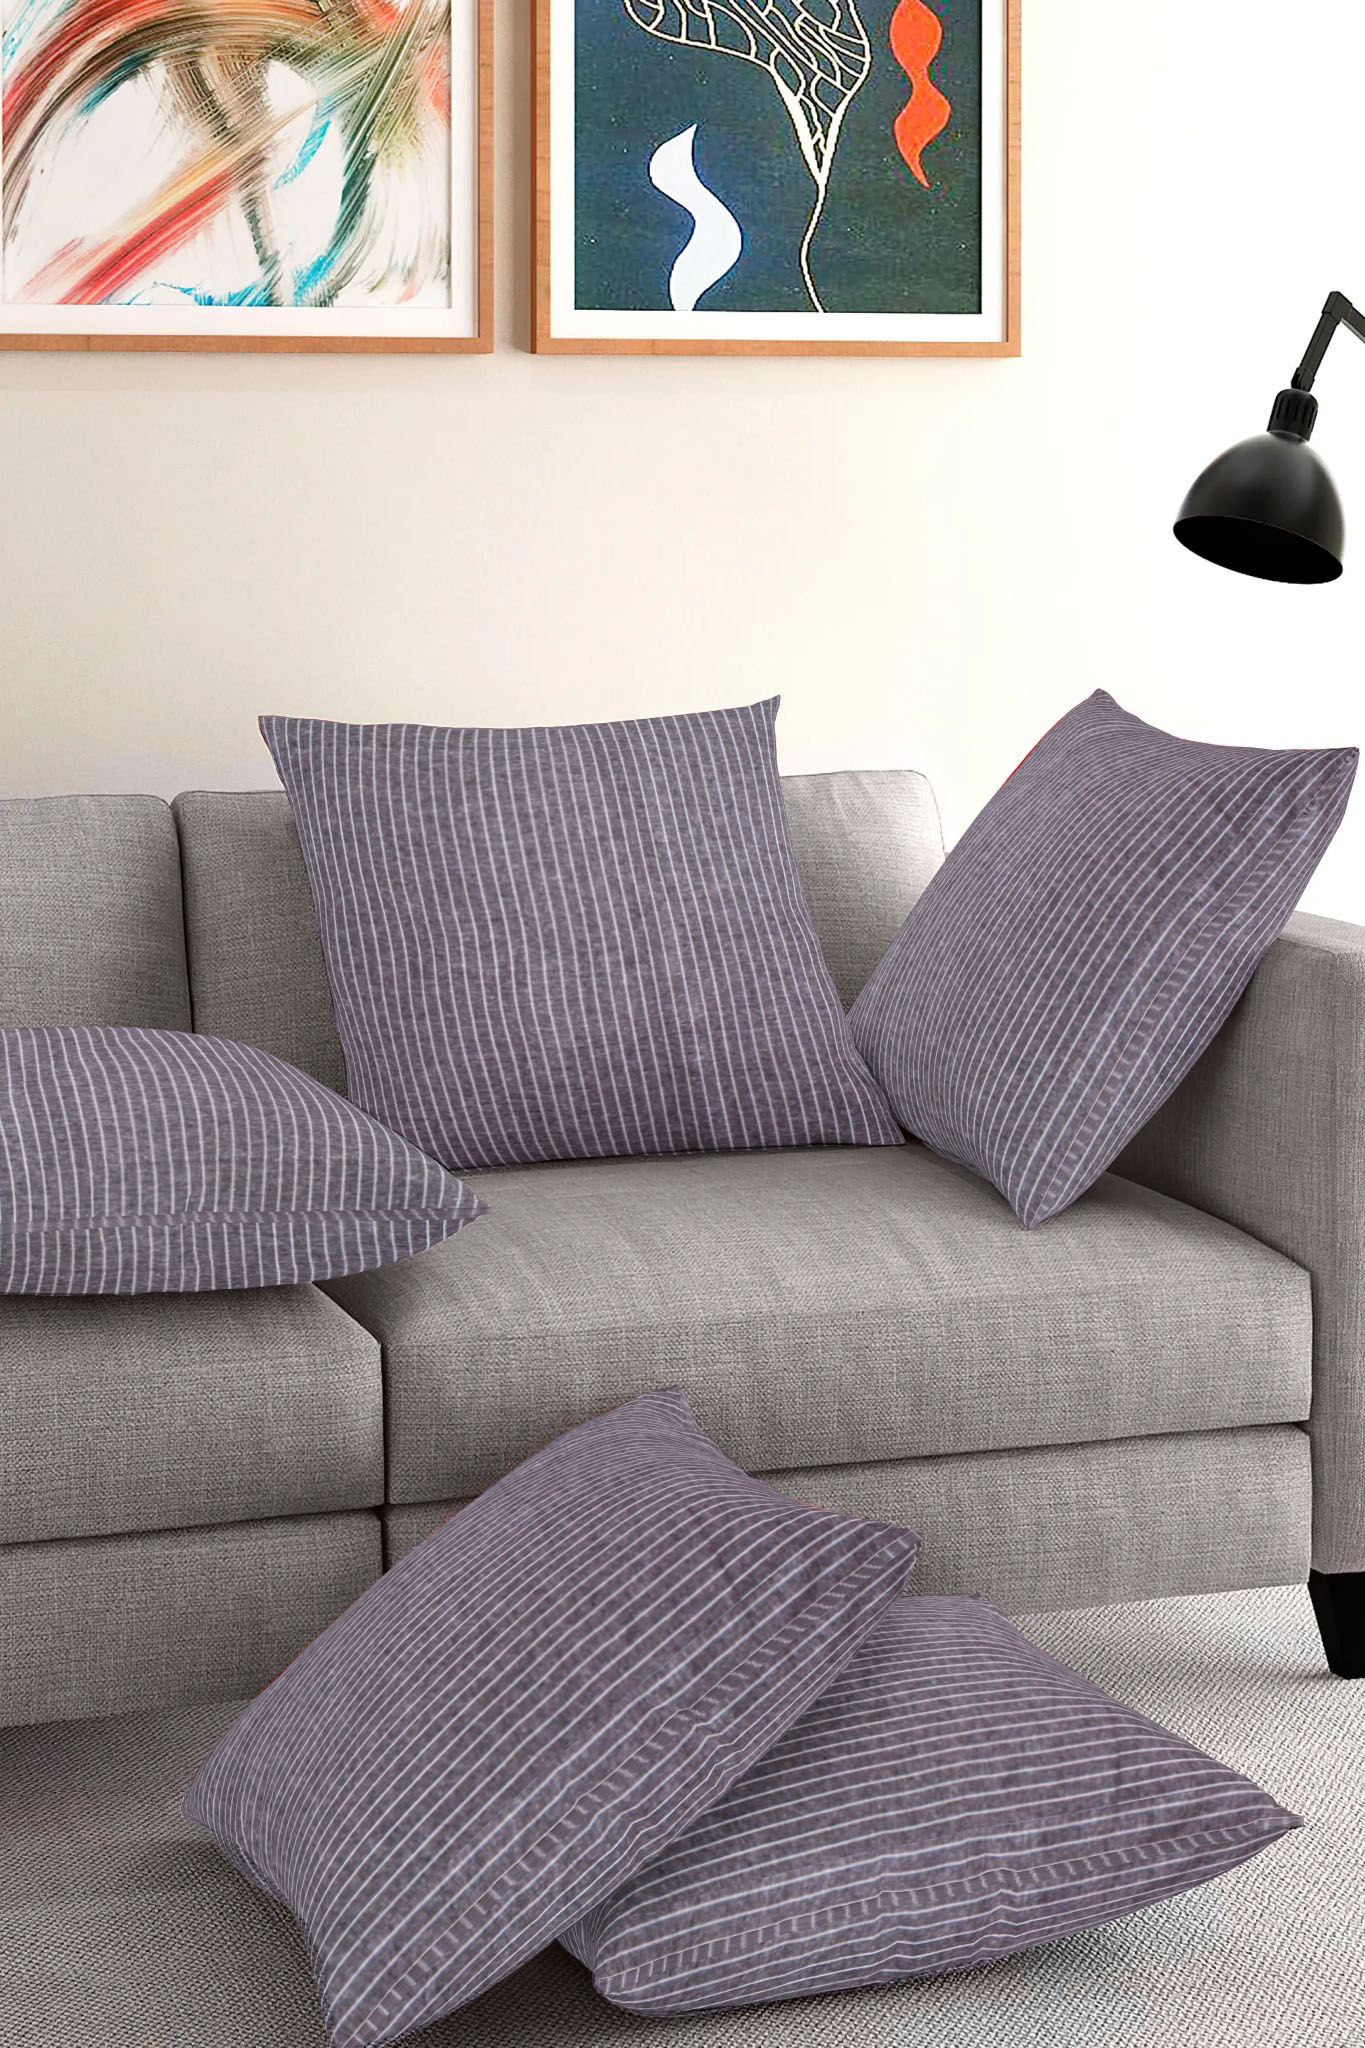 Set of 5-Gray White Cotton Cushion Cover-35393-16x16 Inches